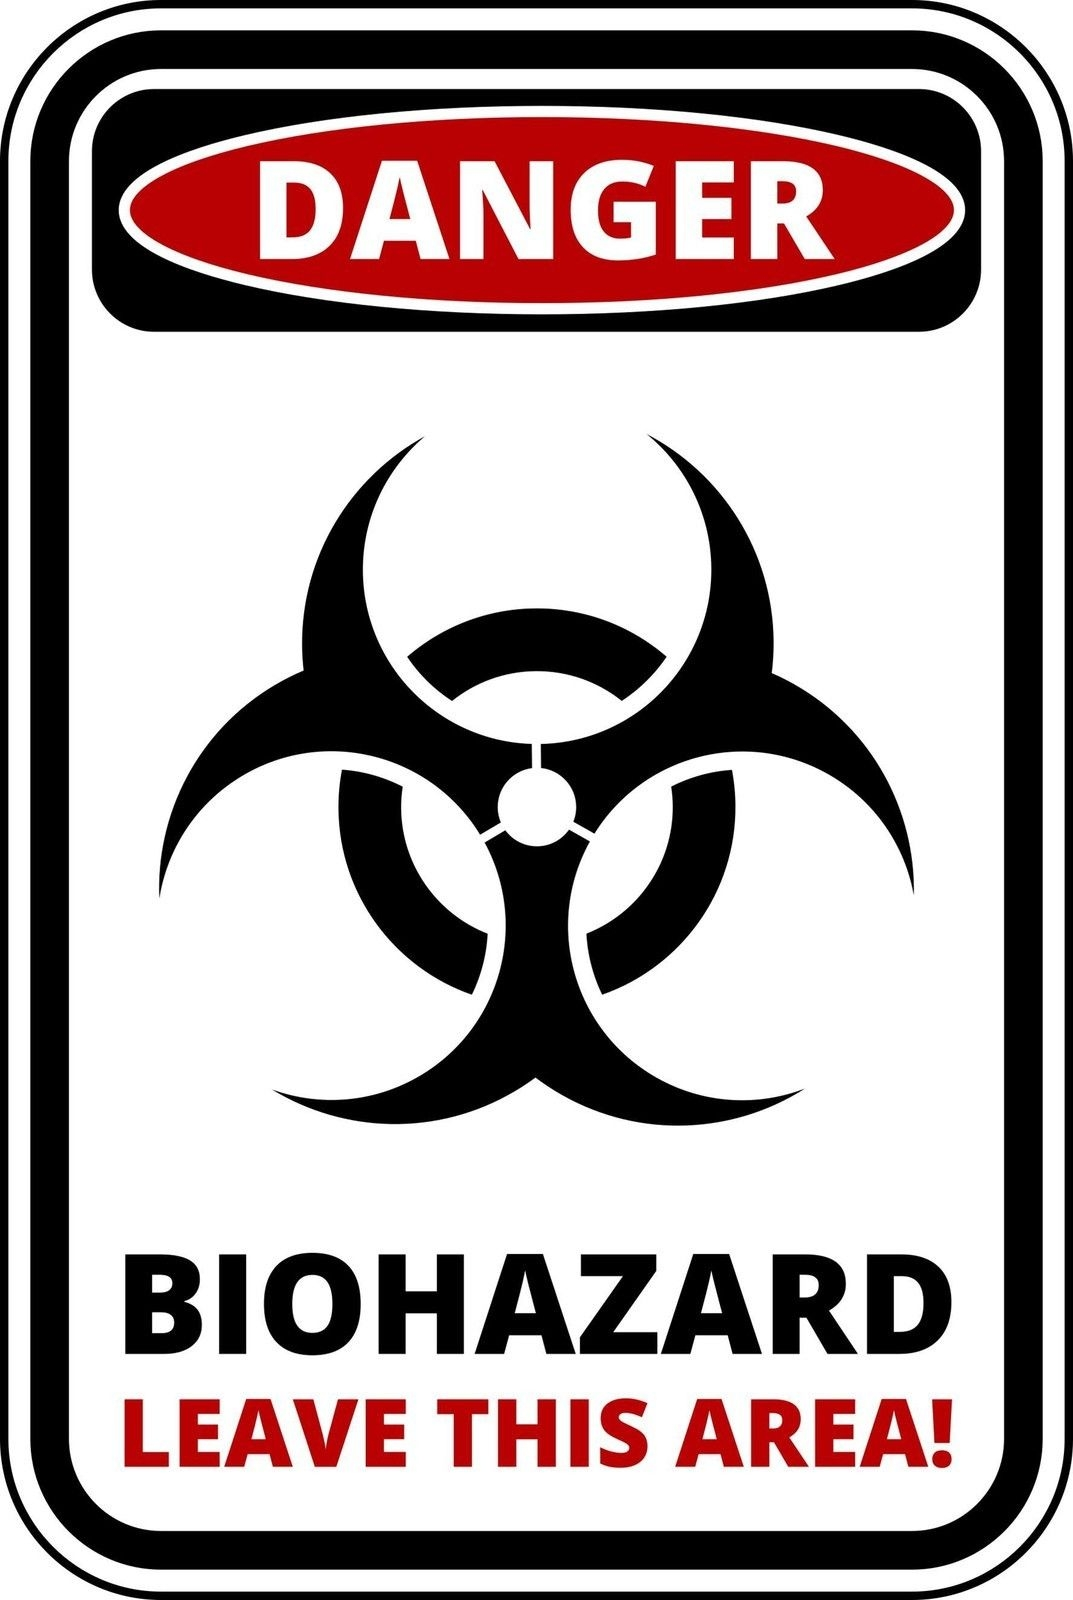 Flowers And Butterflies Wall Stickers Funny Warning Sign Danger Biohazard Sticker Self Adhesive